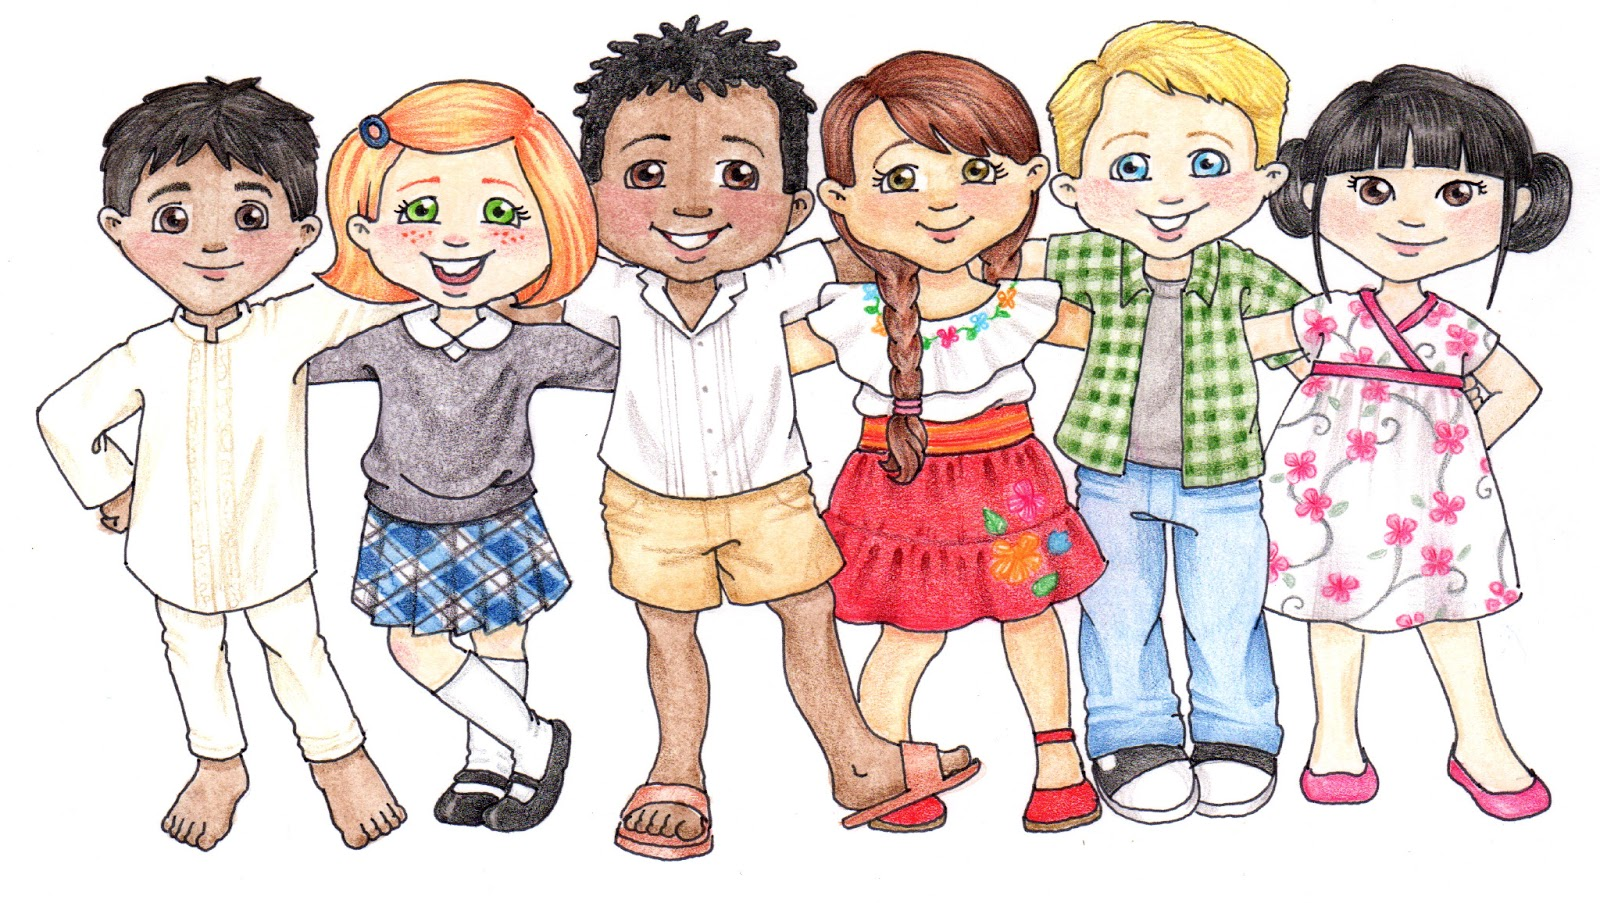 Gods clipart lds Of Children susan fitch January